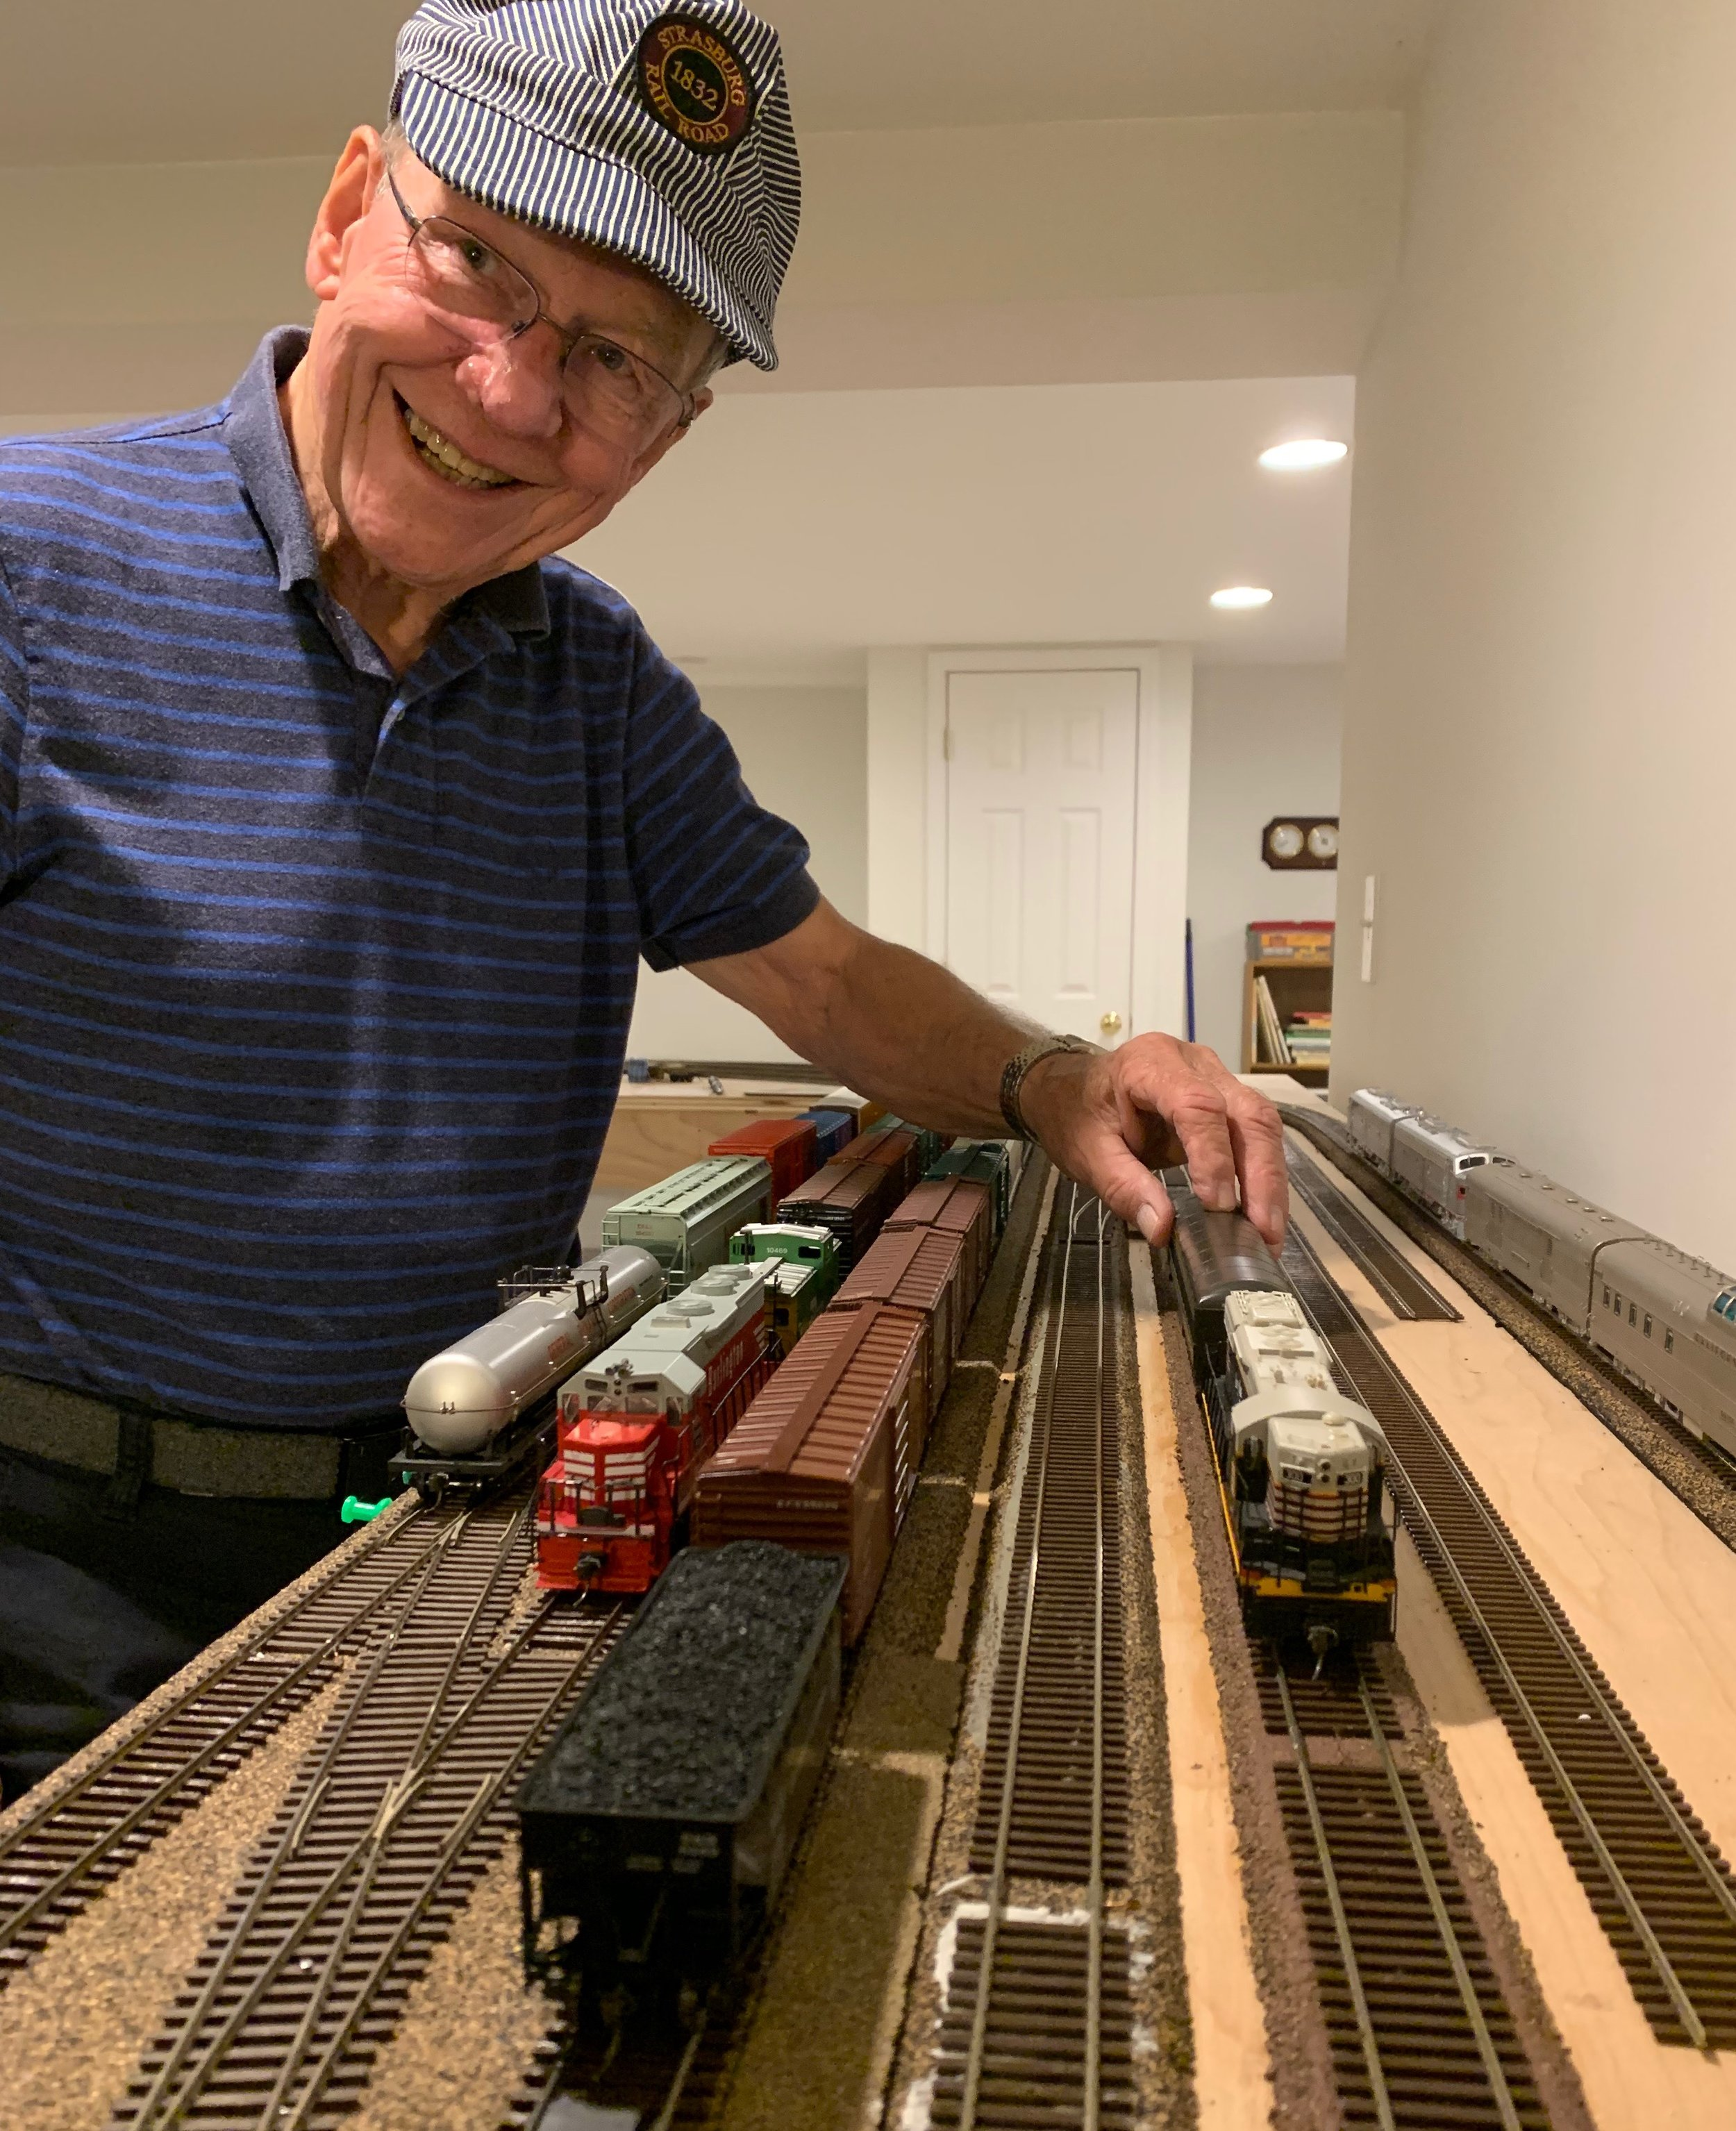 My father-in-law's trains.